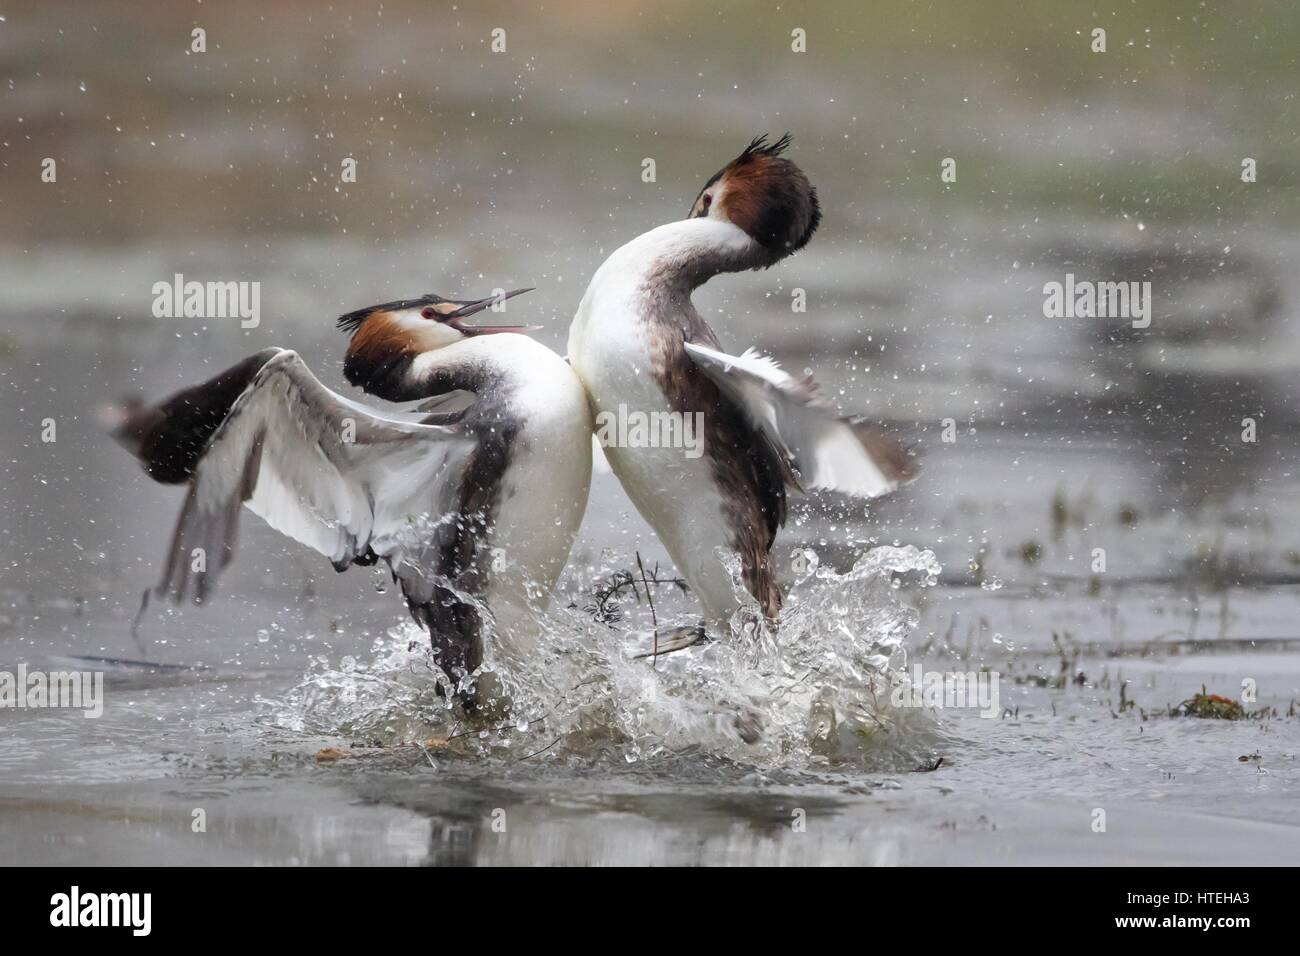 Great crested grebes (Podiceps cristatus) fighting, fight over territory, Hesse, Germany - Stock Image